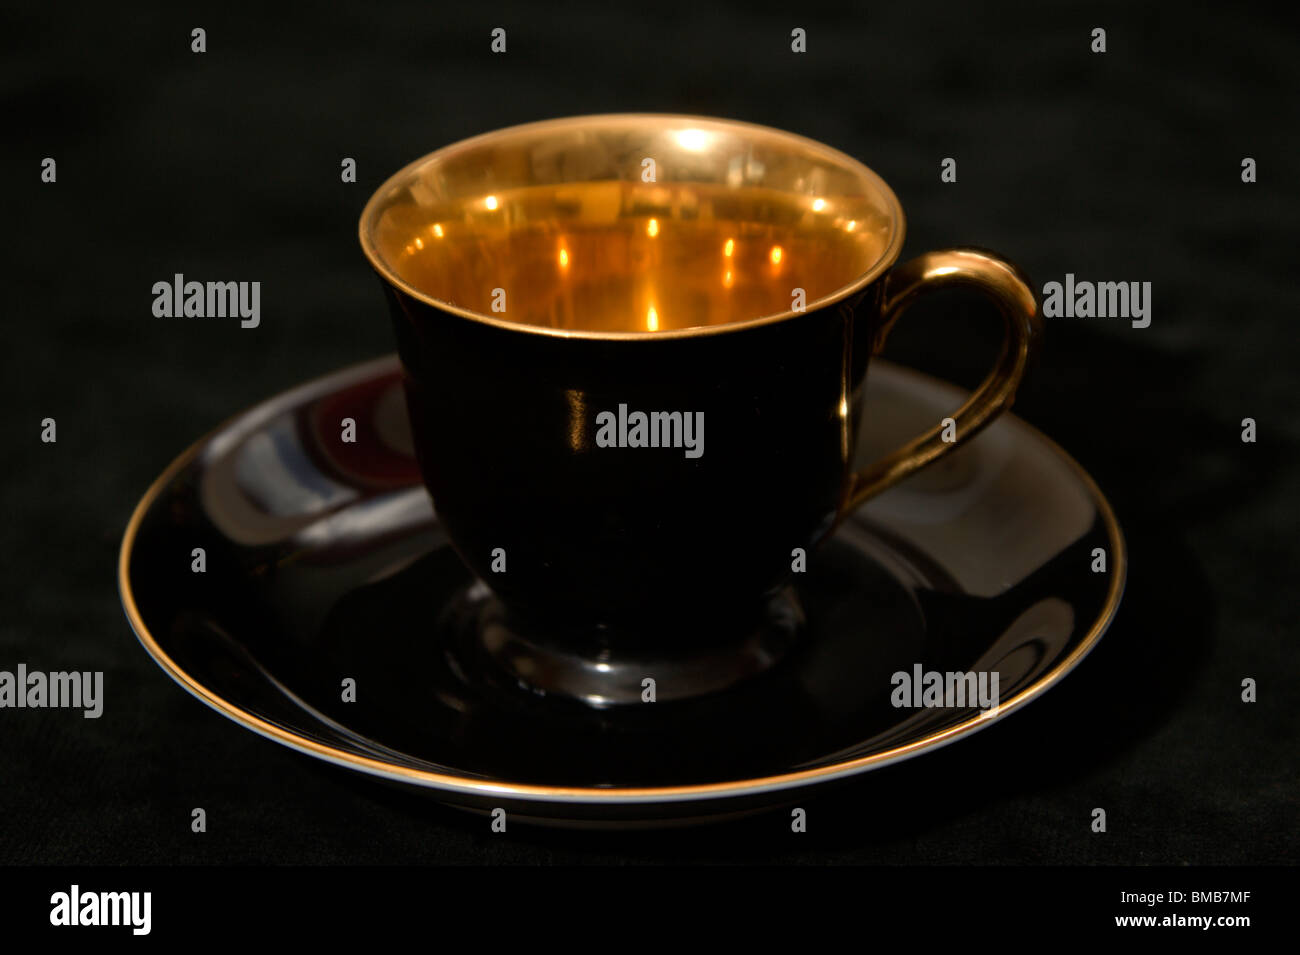 Noritake Gold and Black coffee cups and saucers - Stock Image